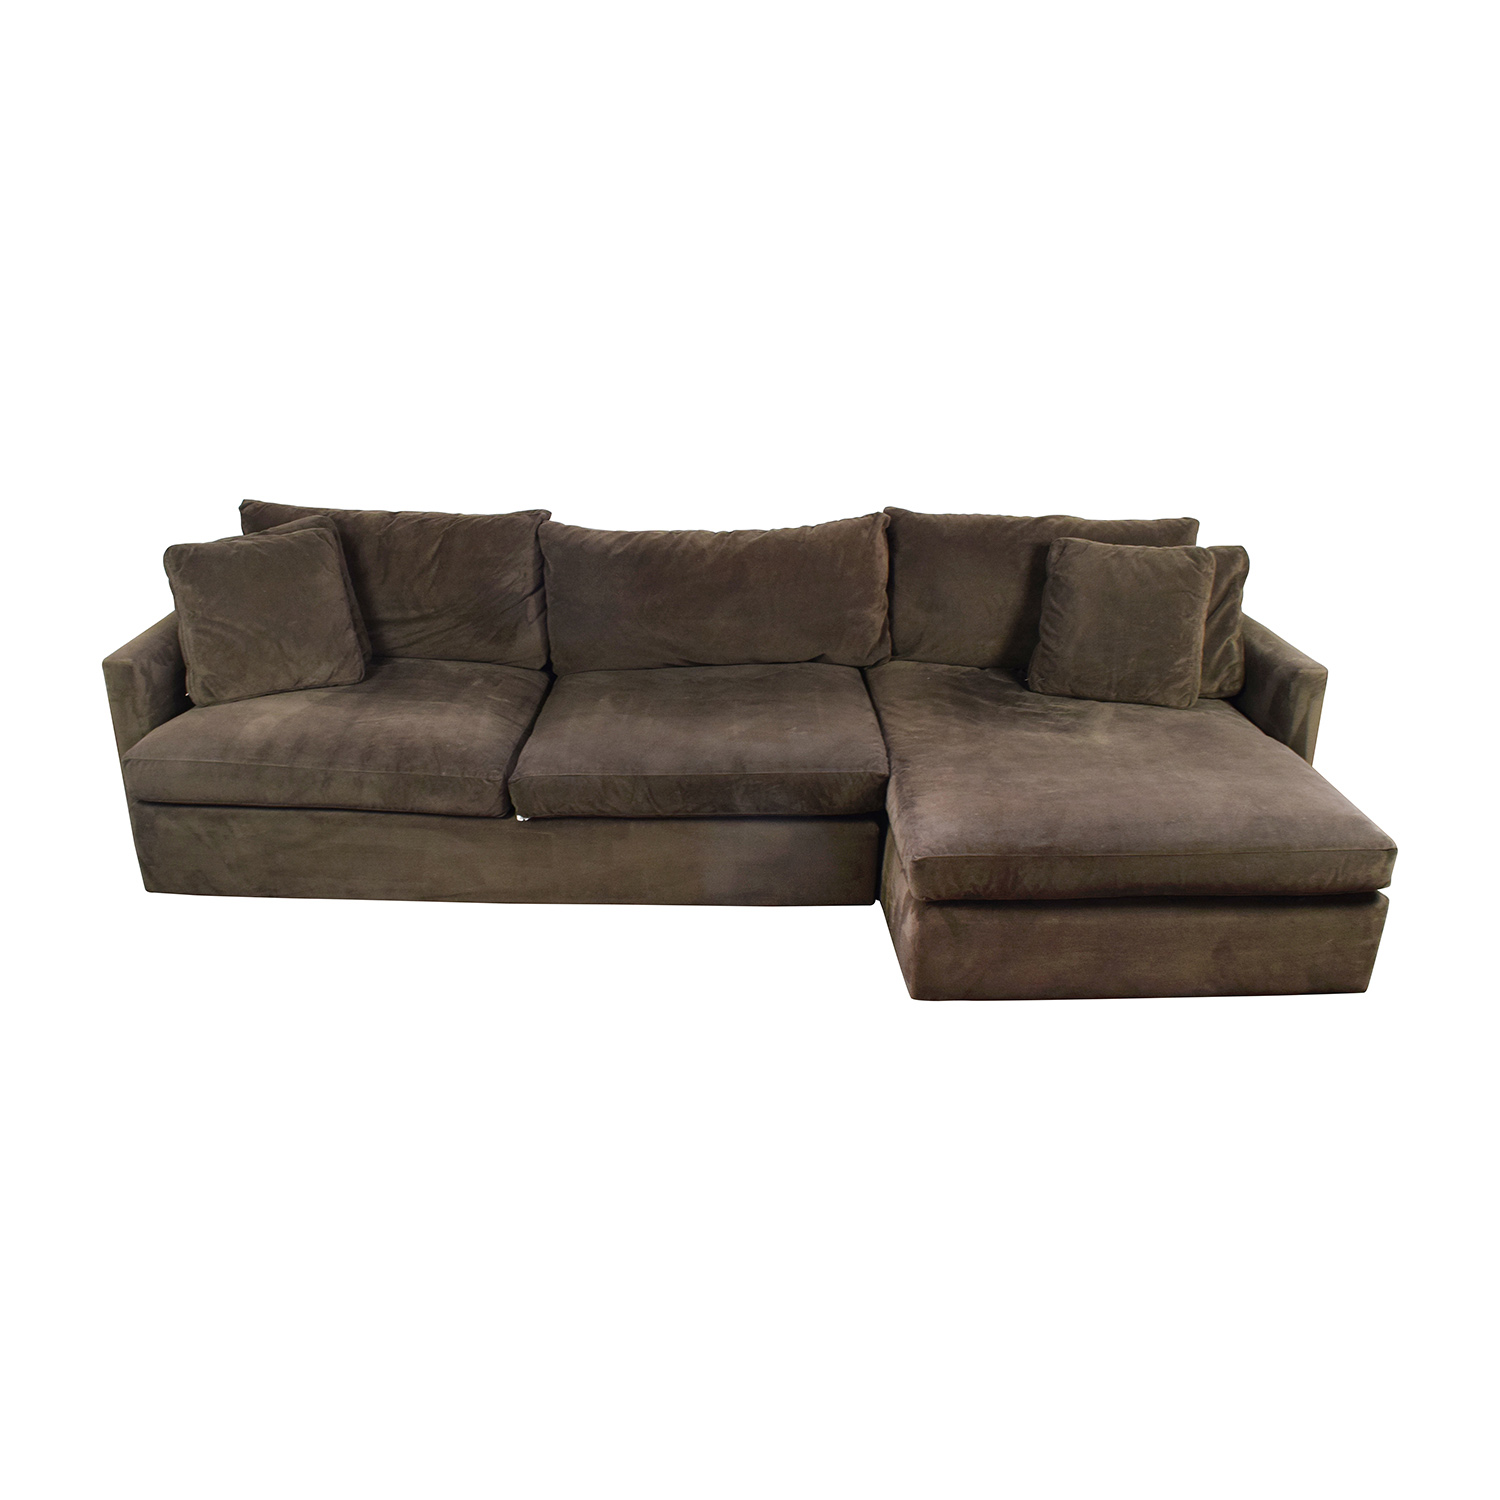 Crate & Barrel Brown Left Arm Sectional / Sectionals